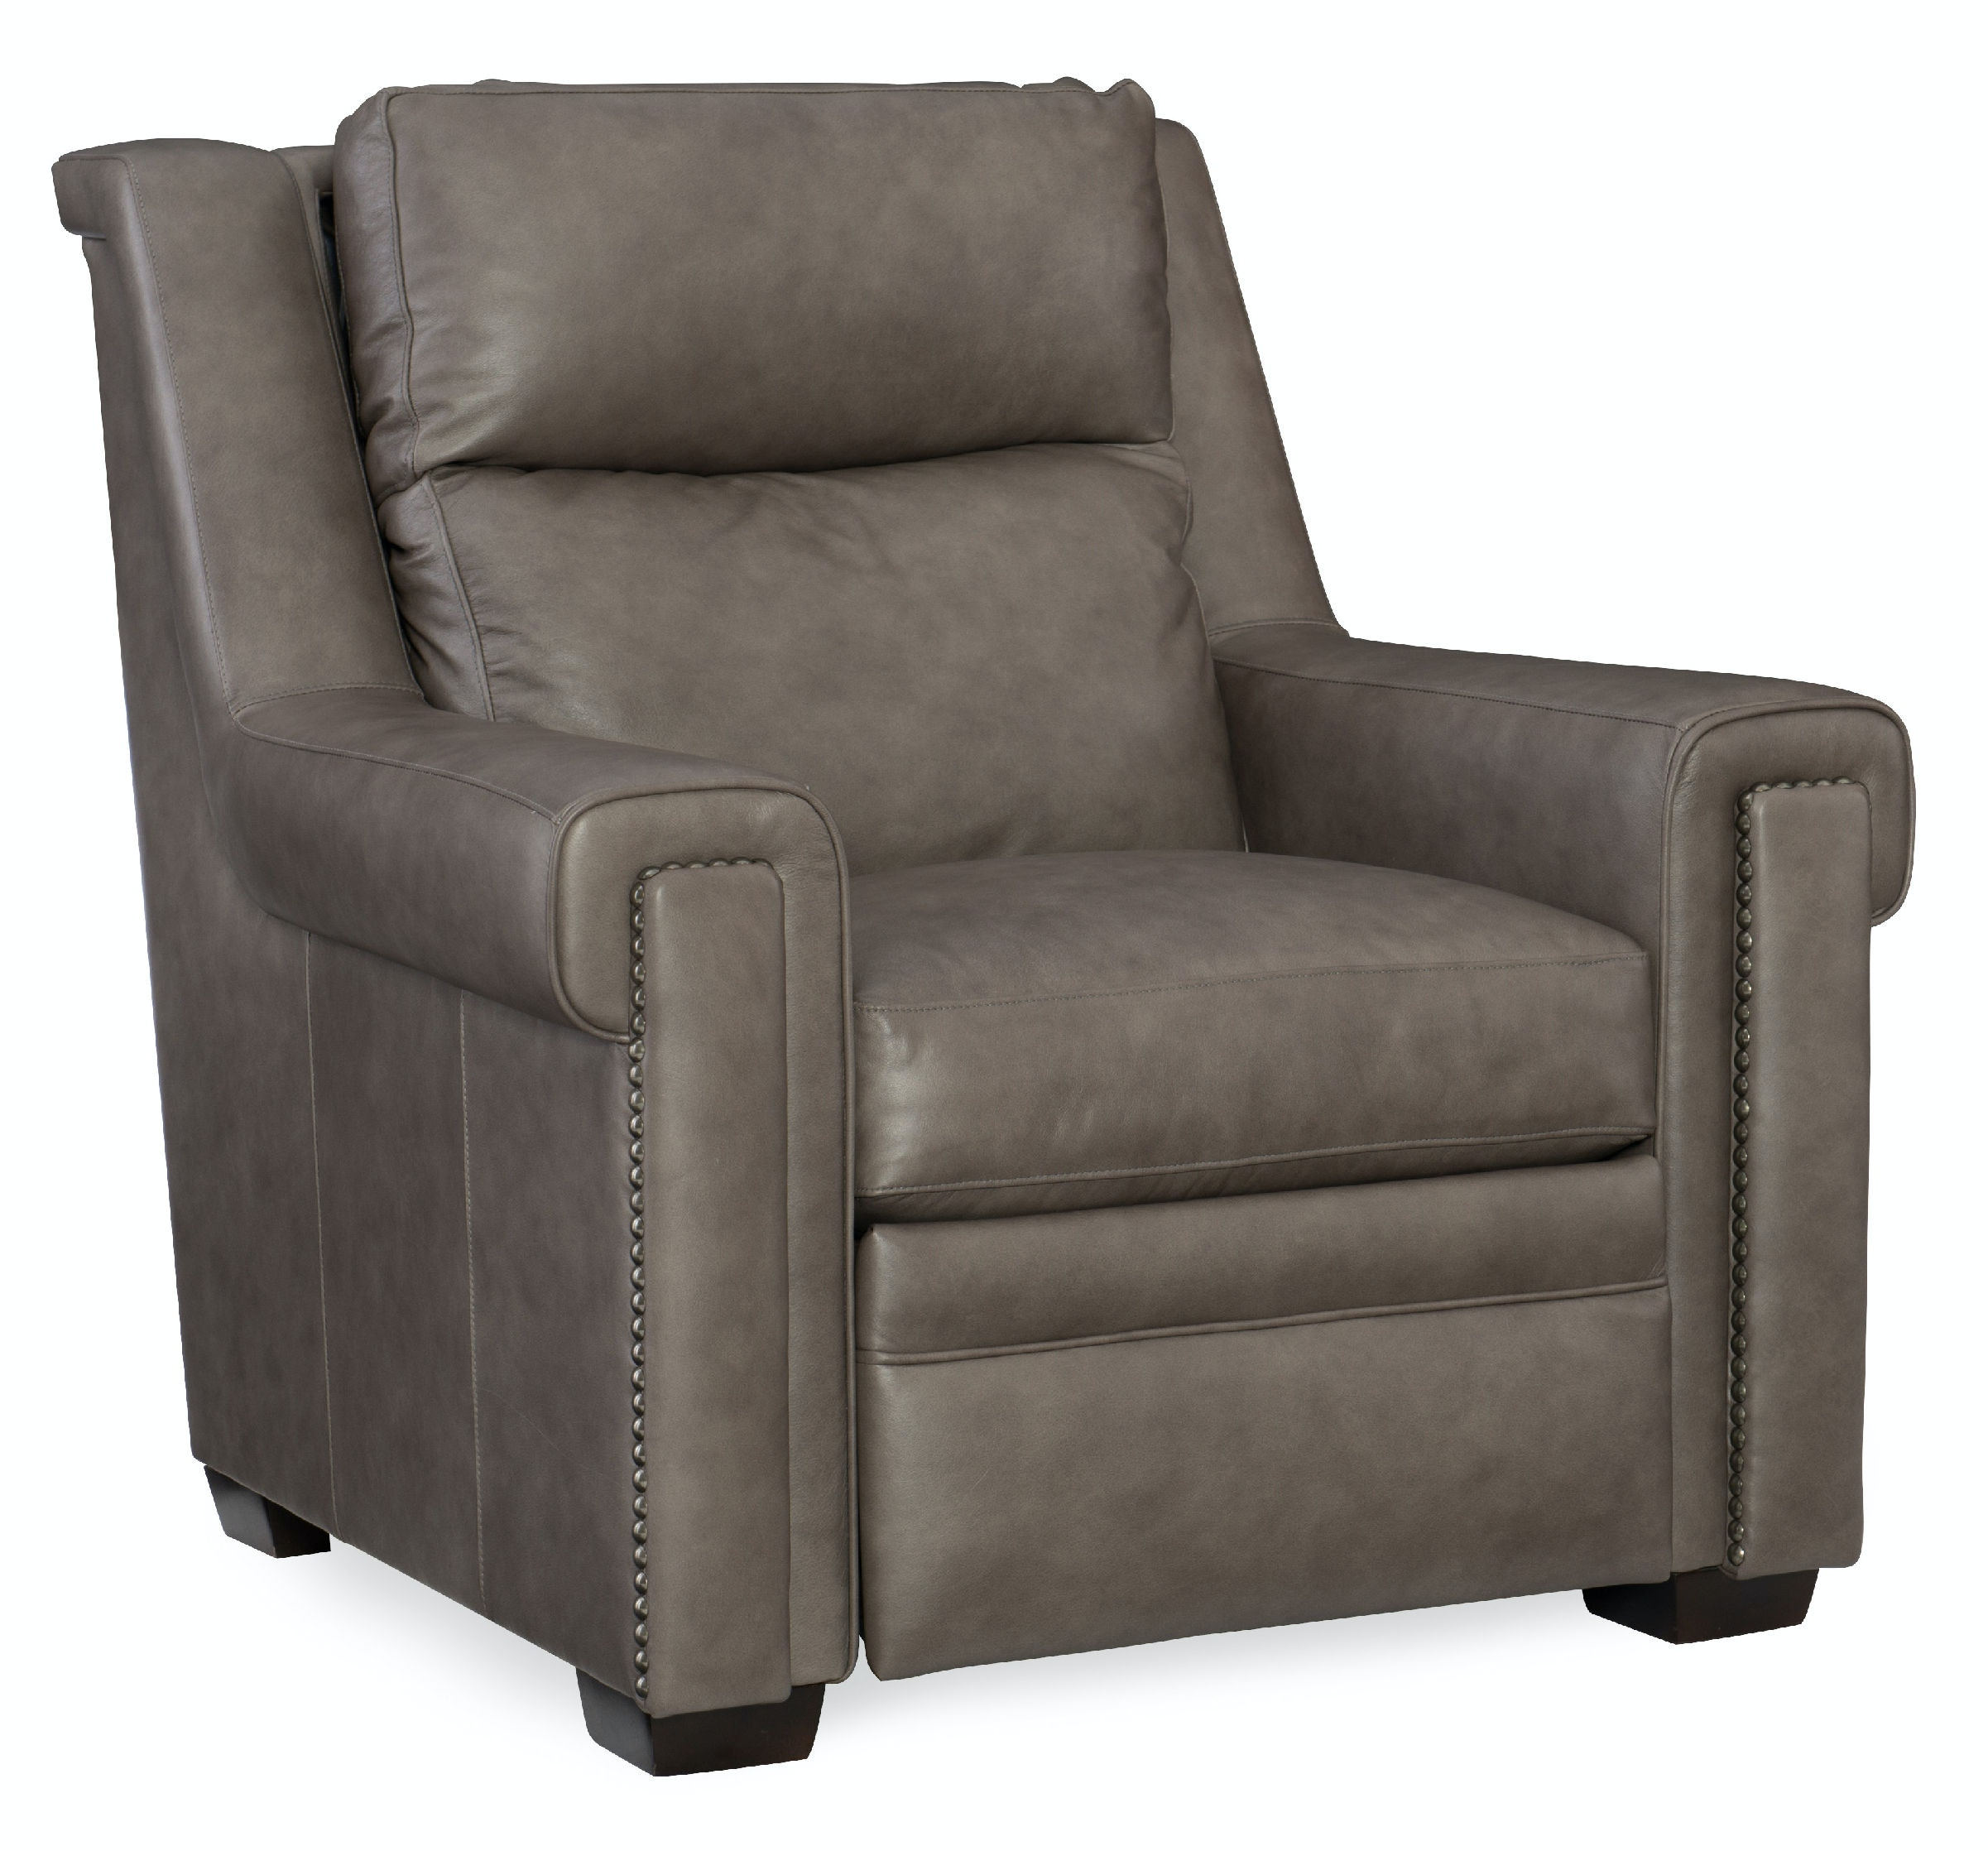 Bradington Young Imagine Chair Full Recline   W/Articulating HR 960 35